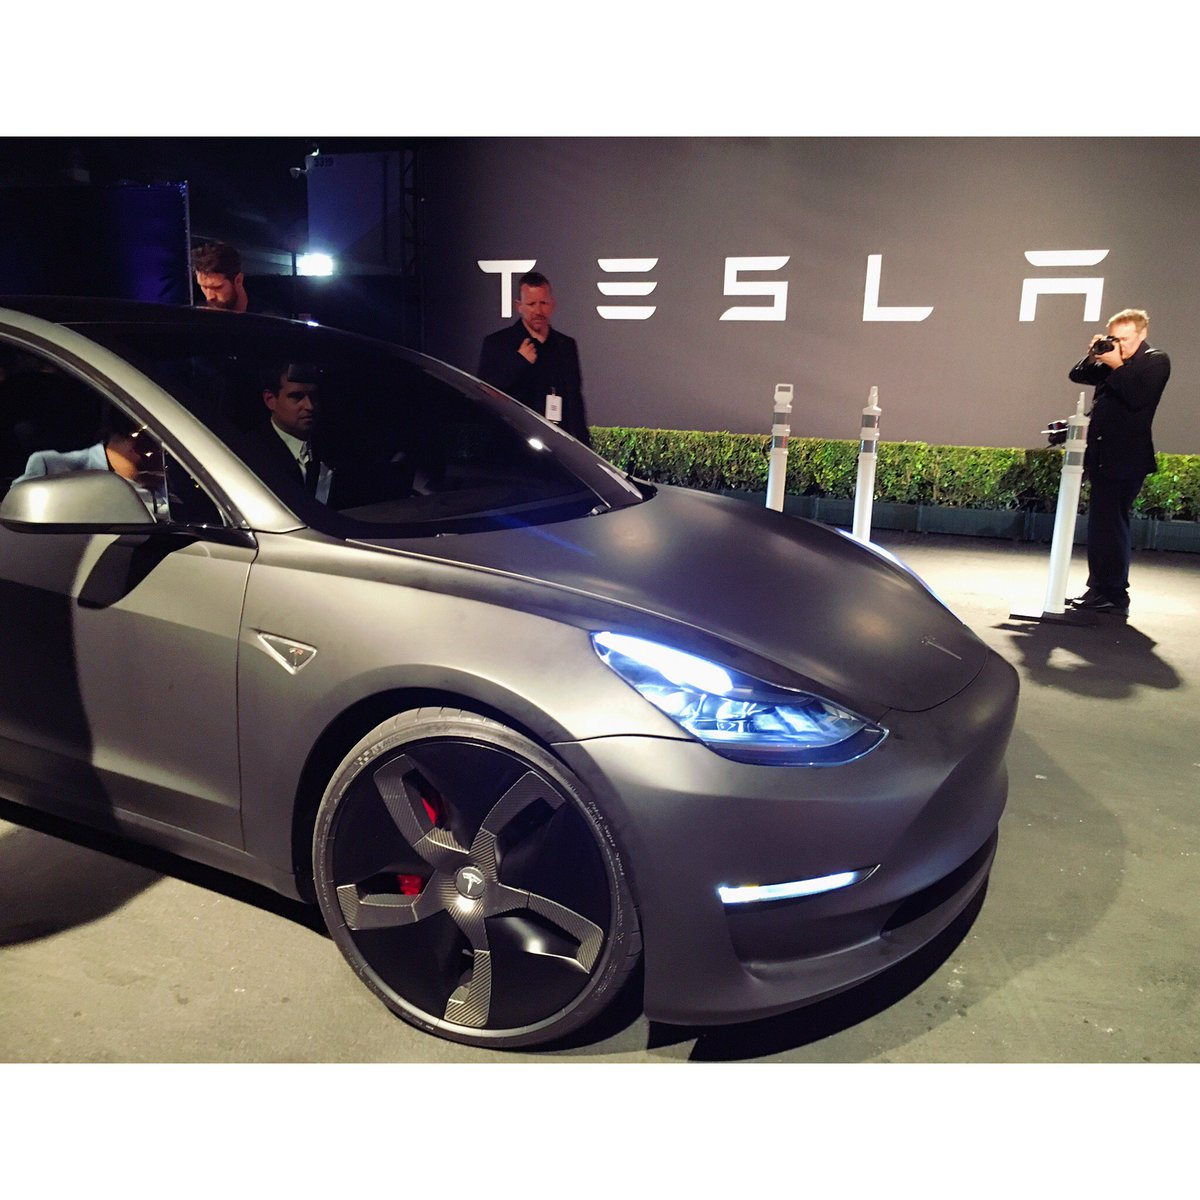 """Never again can anyone say that nobody wants to buy an electric car""-CEO PlugShare #Tesla #TeslaModel3 #Model3 #EVs https://t.co/qsWckO2c65"